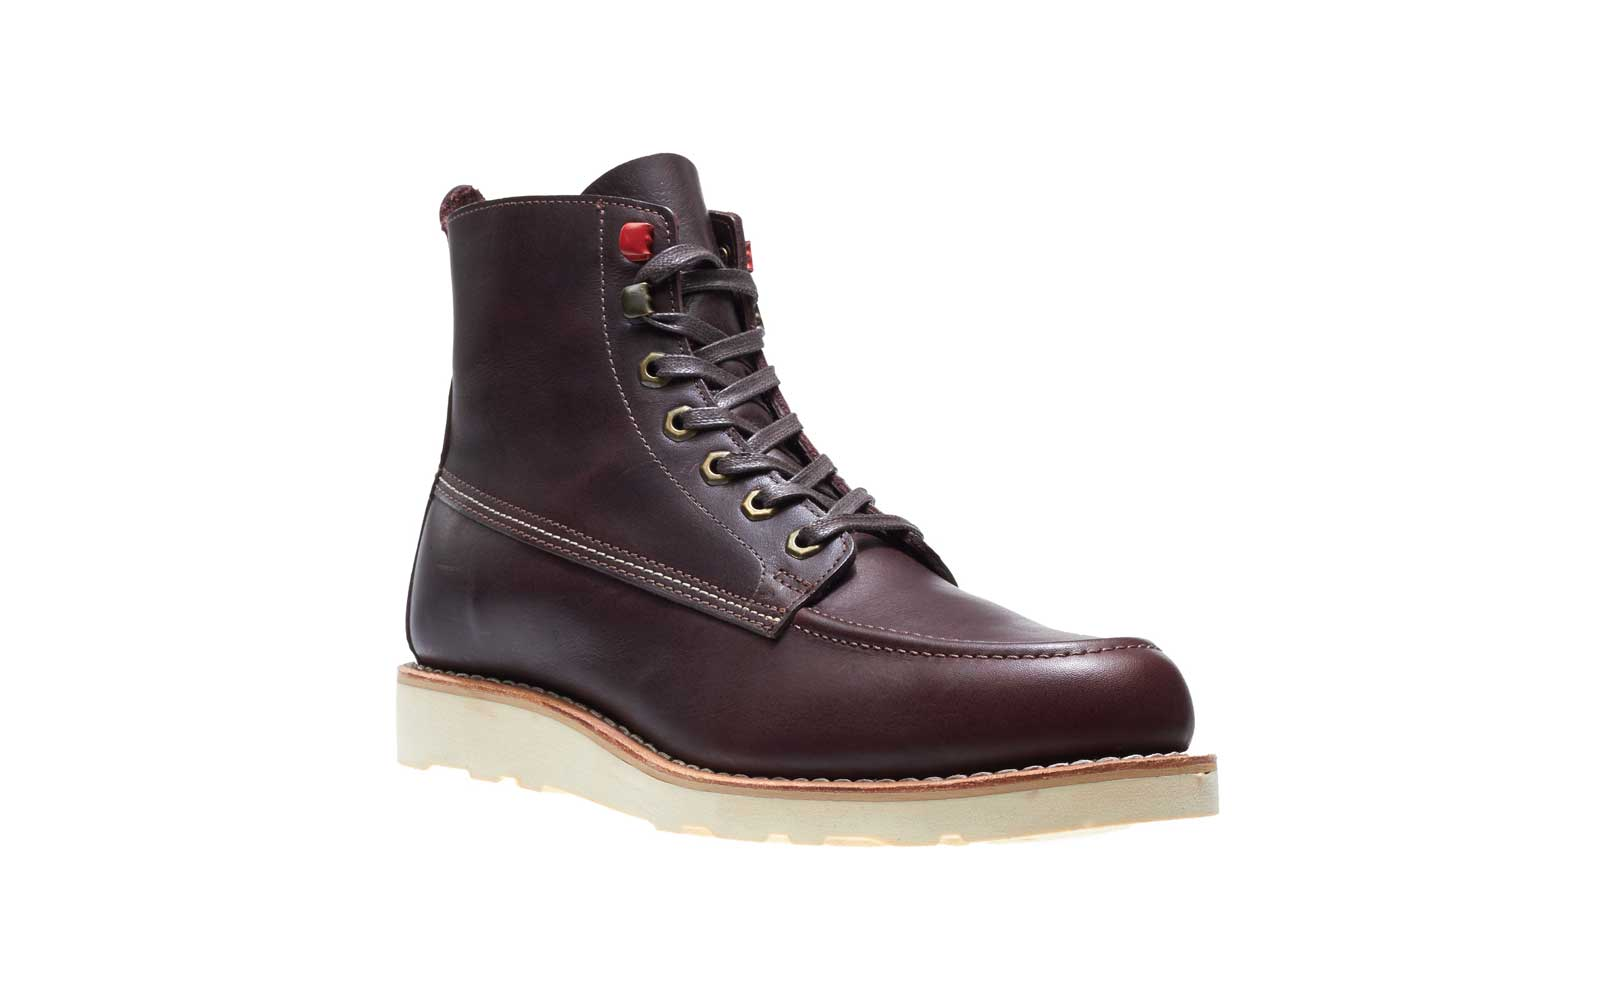 wolverine mens stylish boots